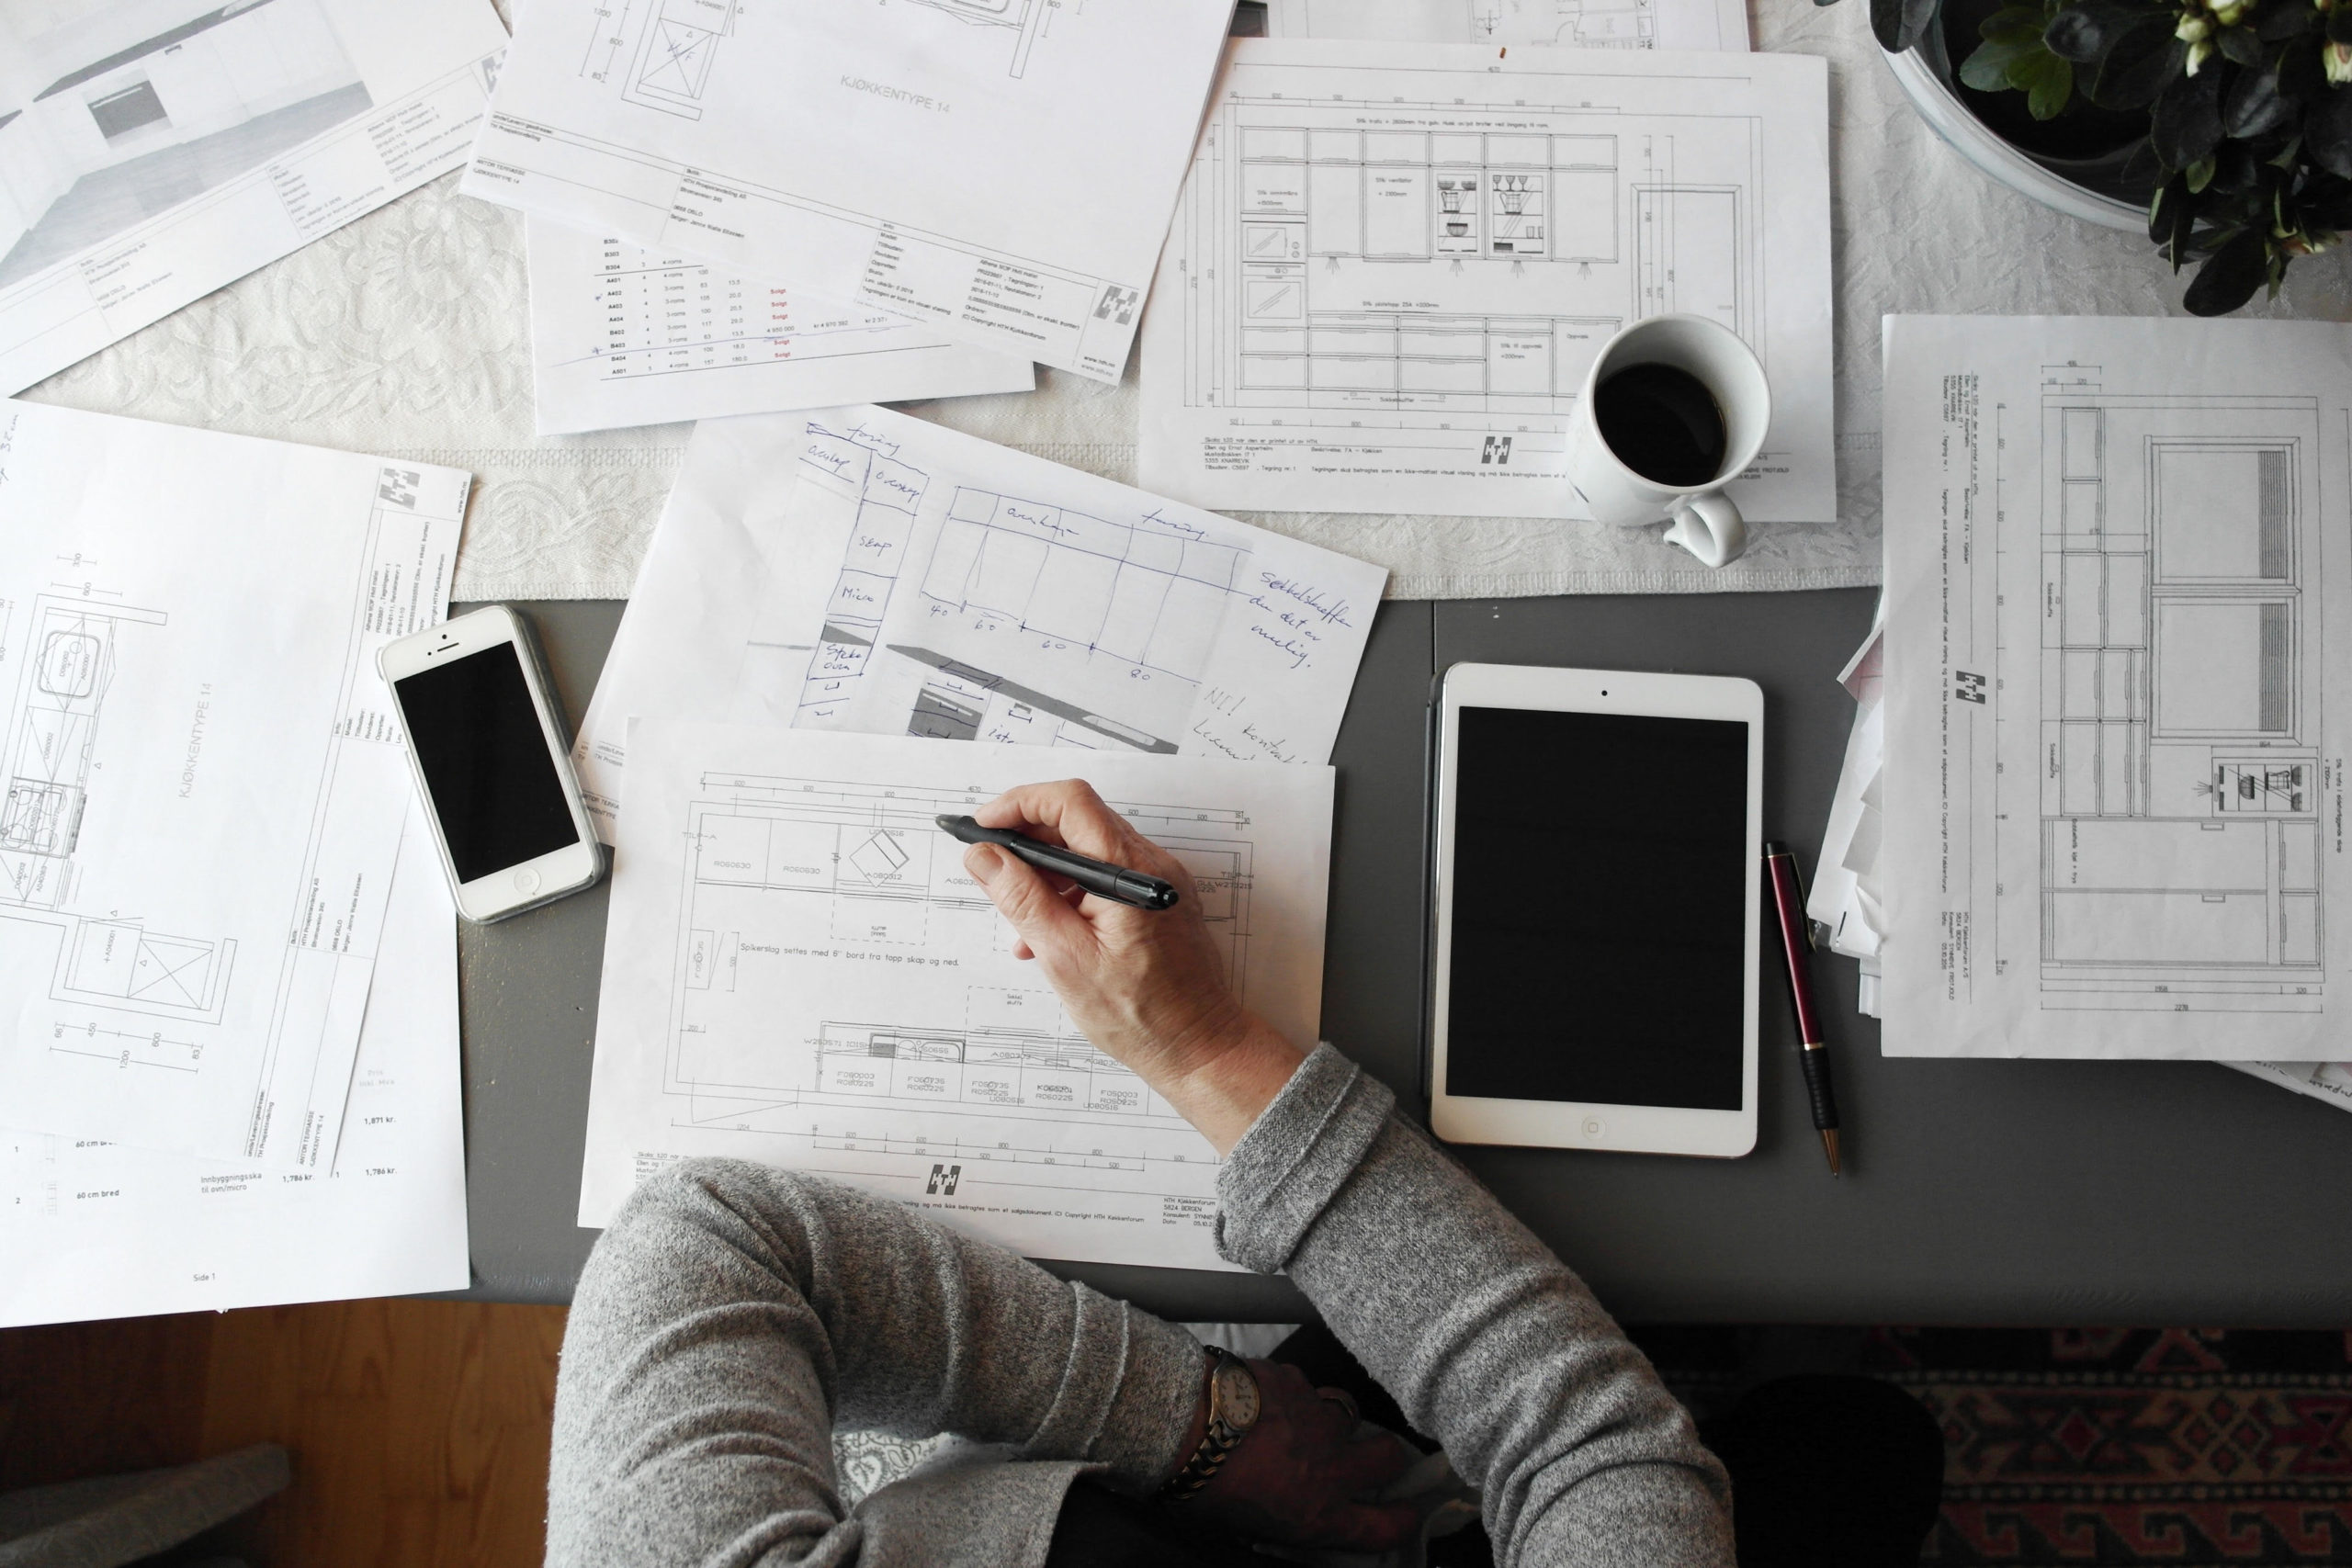 man working with papers